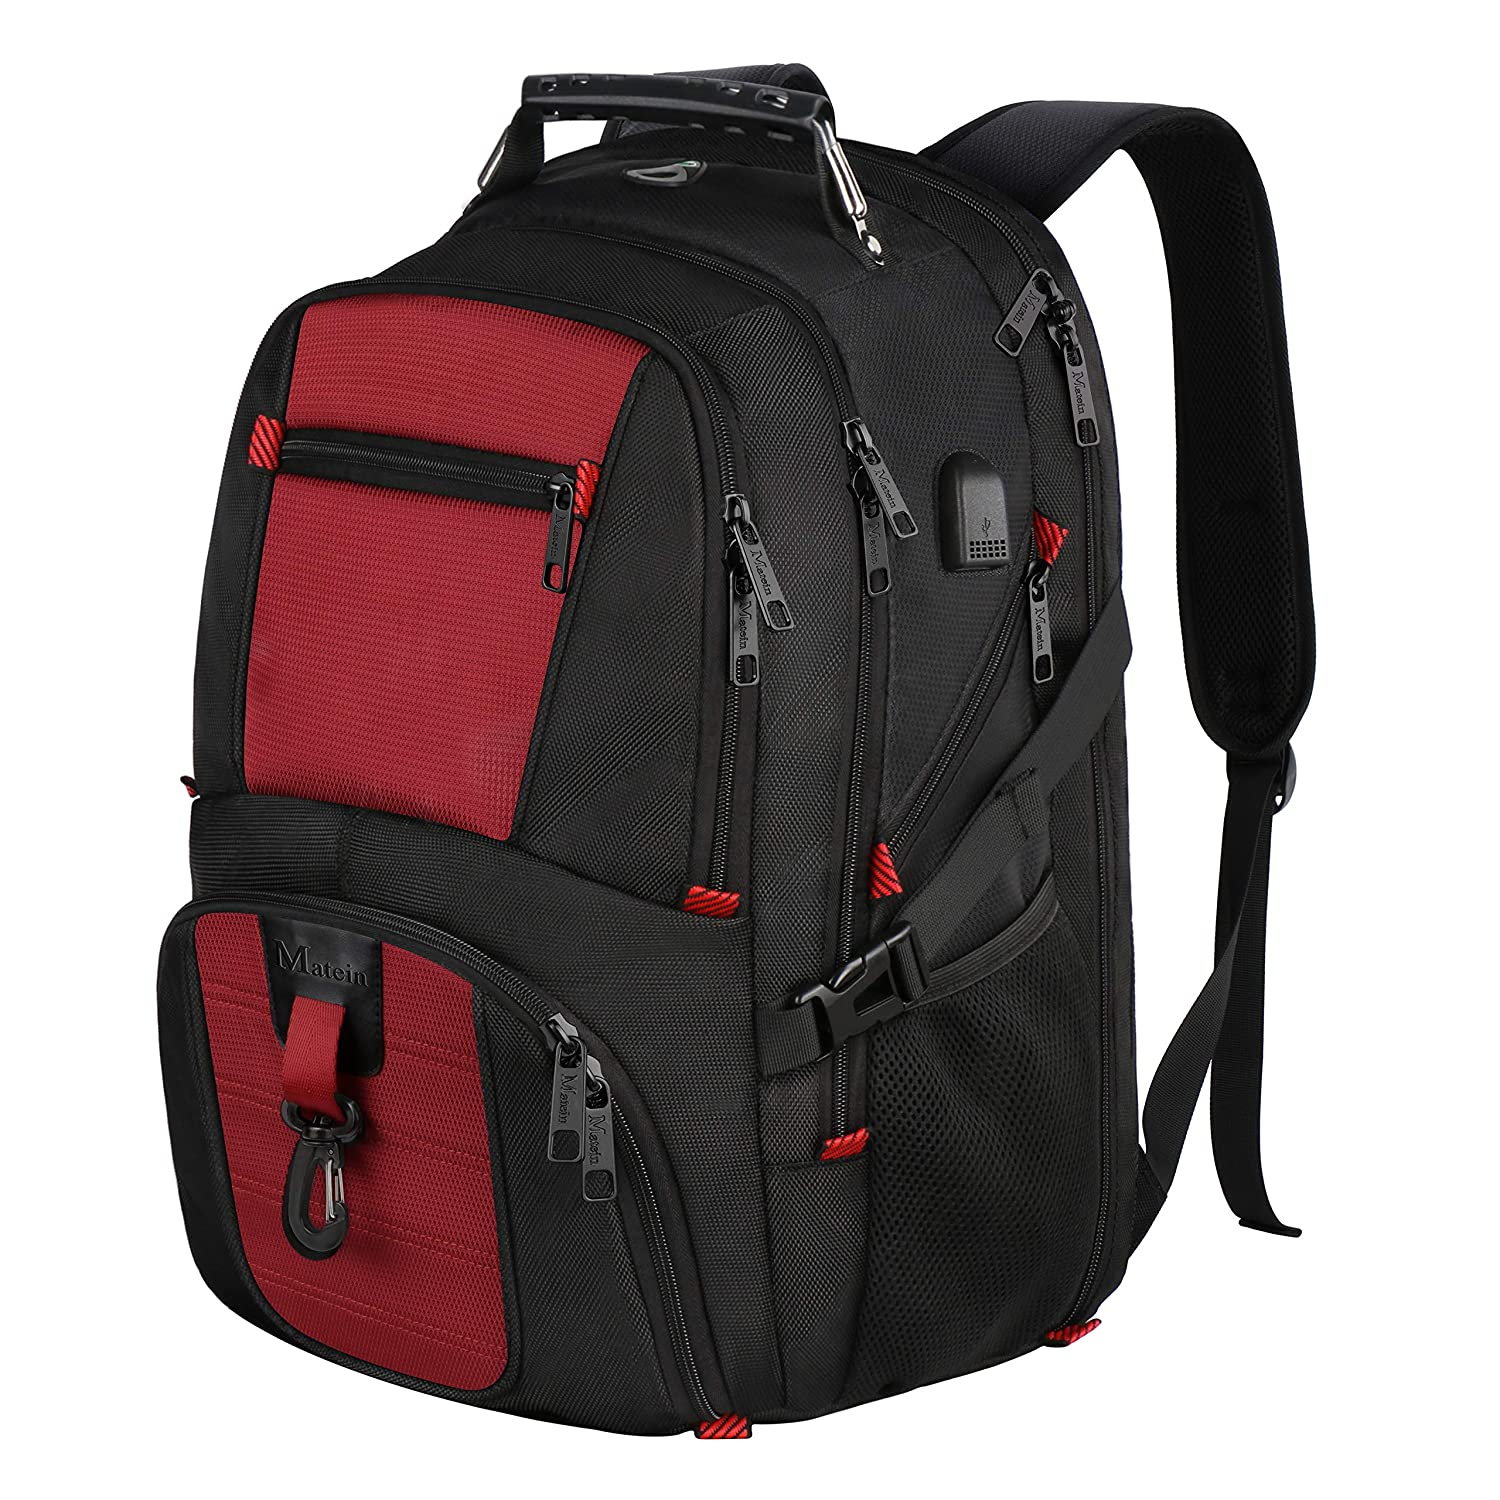 8952436d949a Travel Backpack with USB, Water Resistant Business Laptop Backpack with  Anti Theft Zipper for Women & Men, Computer School Bag College Backpack for  ...